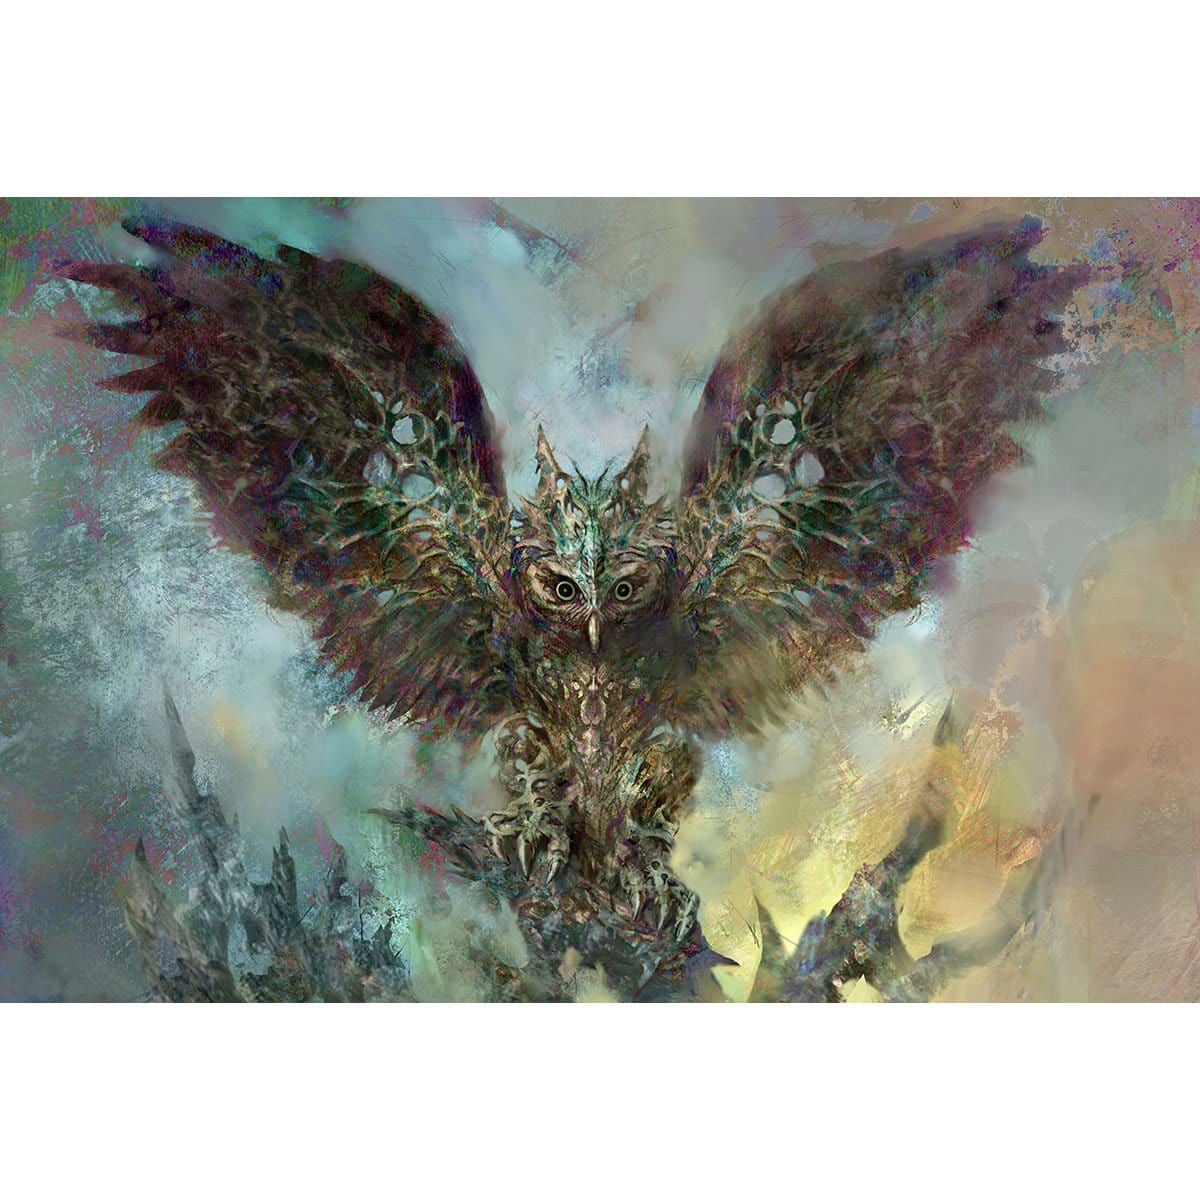 Baleful Strix Print - Print - Original Magic Art - Accessories for Magic the Gathering and other card games